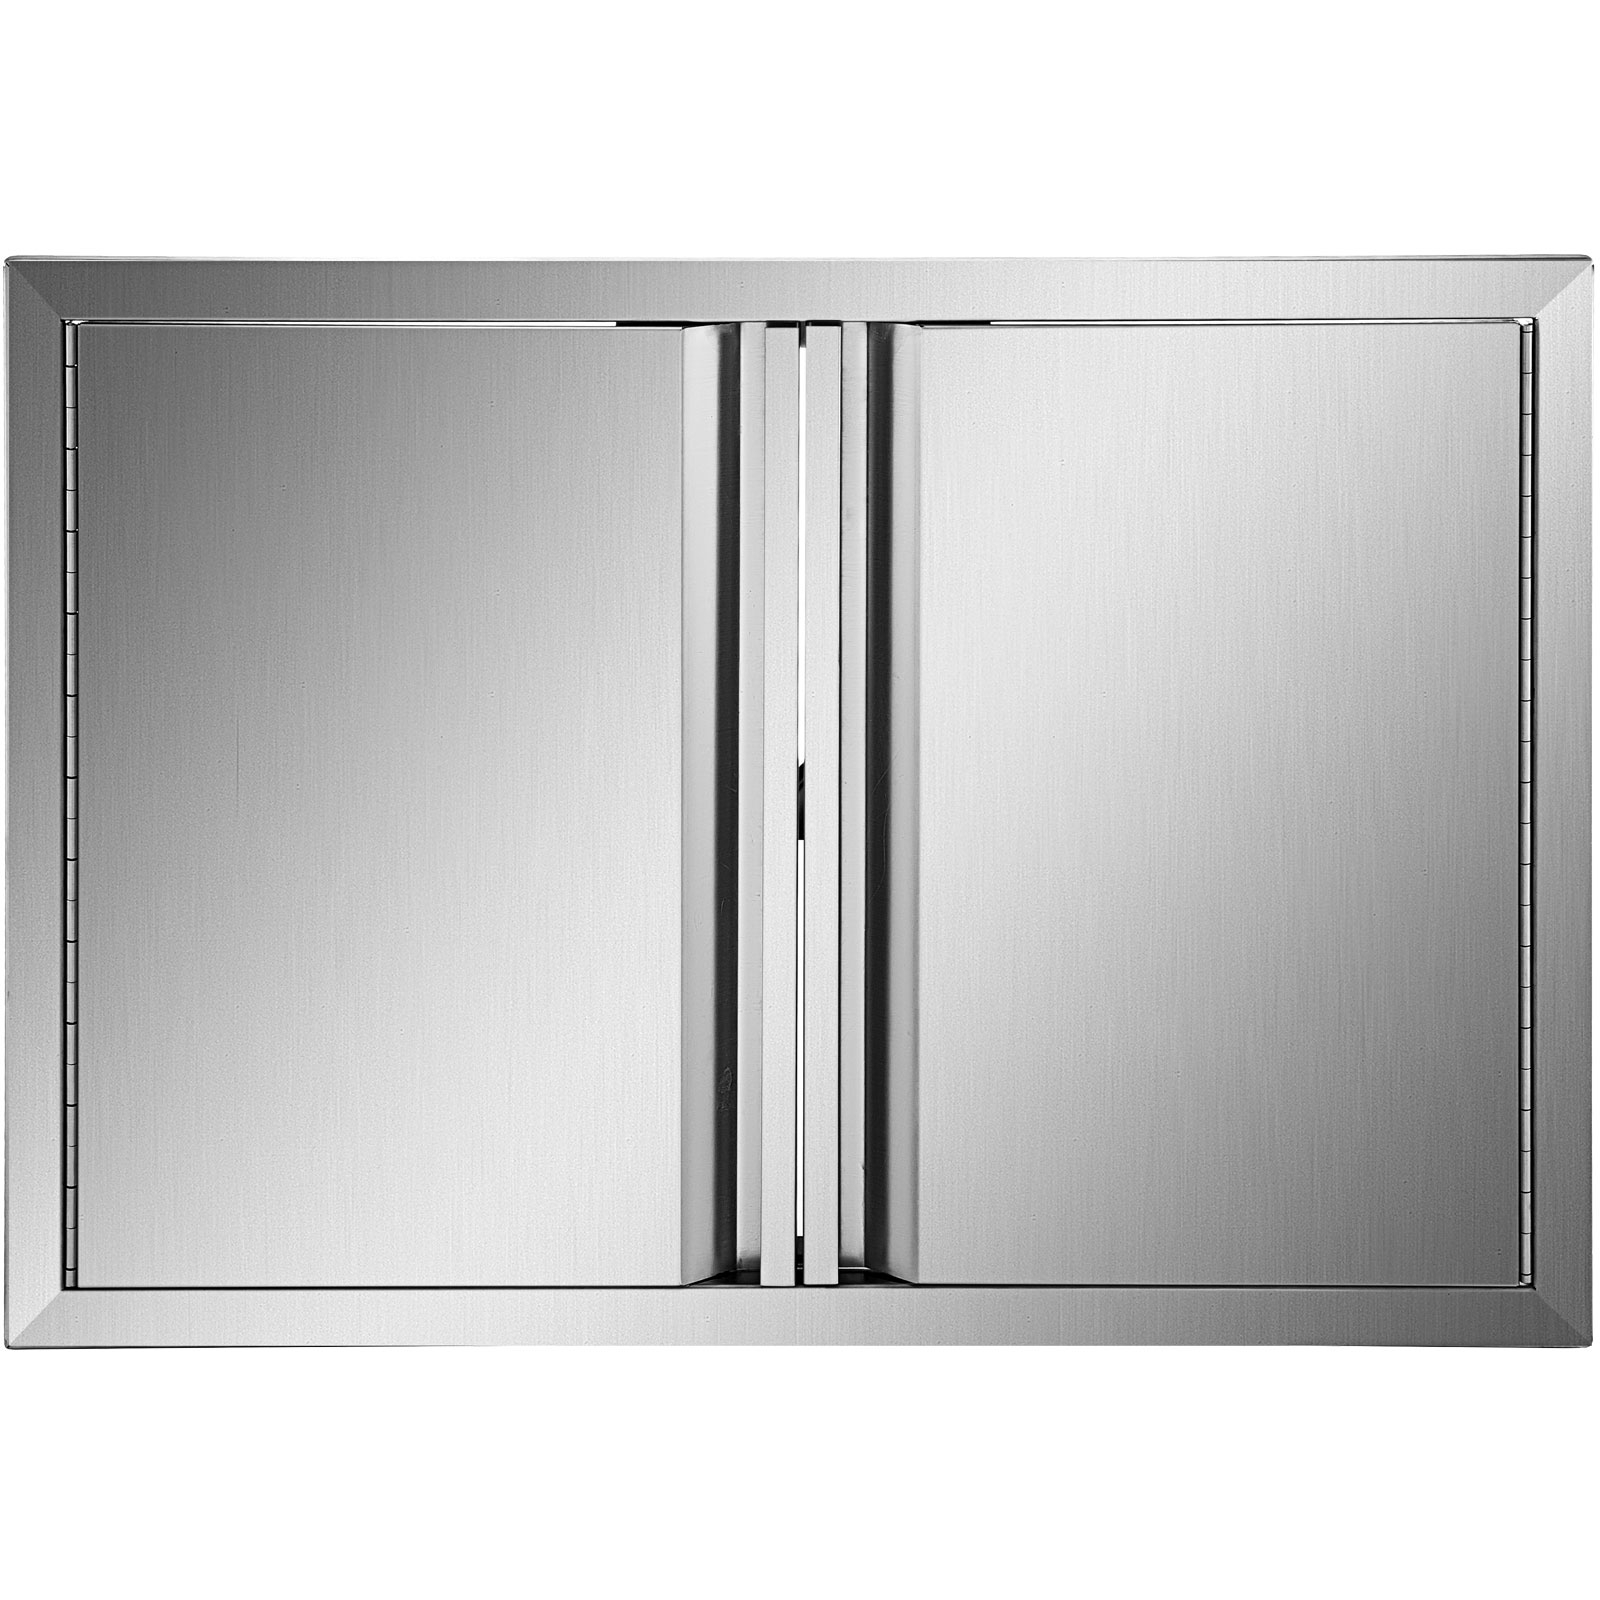 BBQ Access Door Outdoor Kitchen Doors Stainless Steel ...